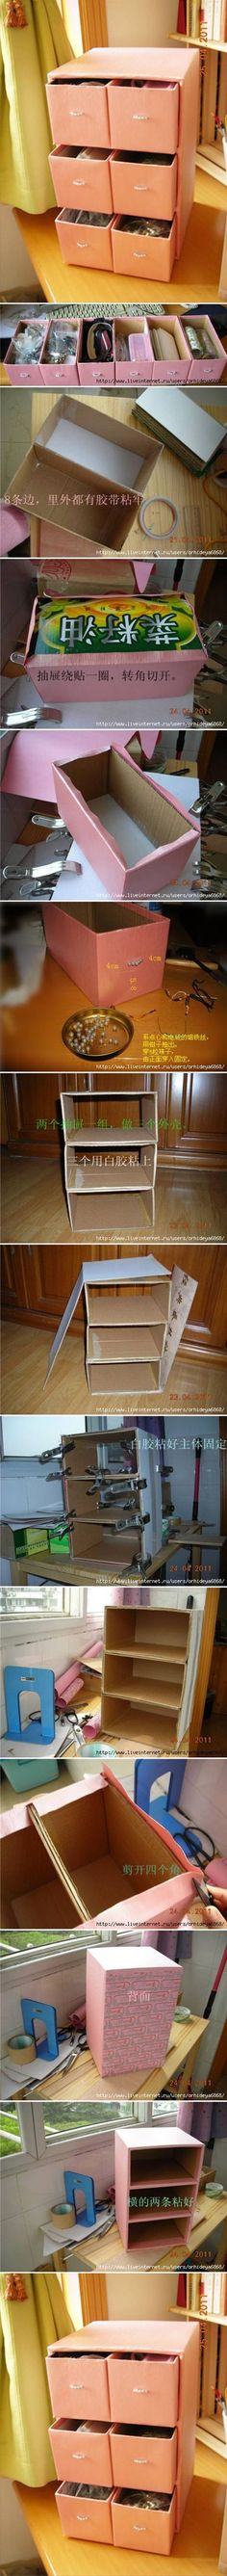 DIY Small Cardboard Chest DIY Projects / UsefulDIY.com on imgfave